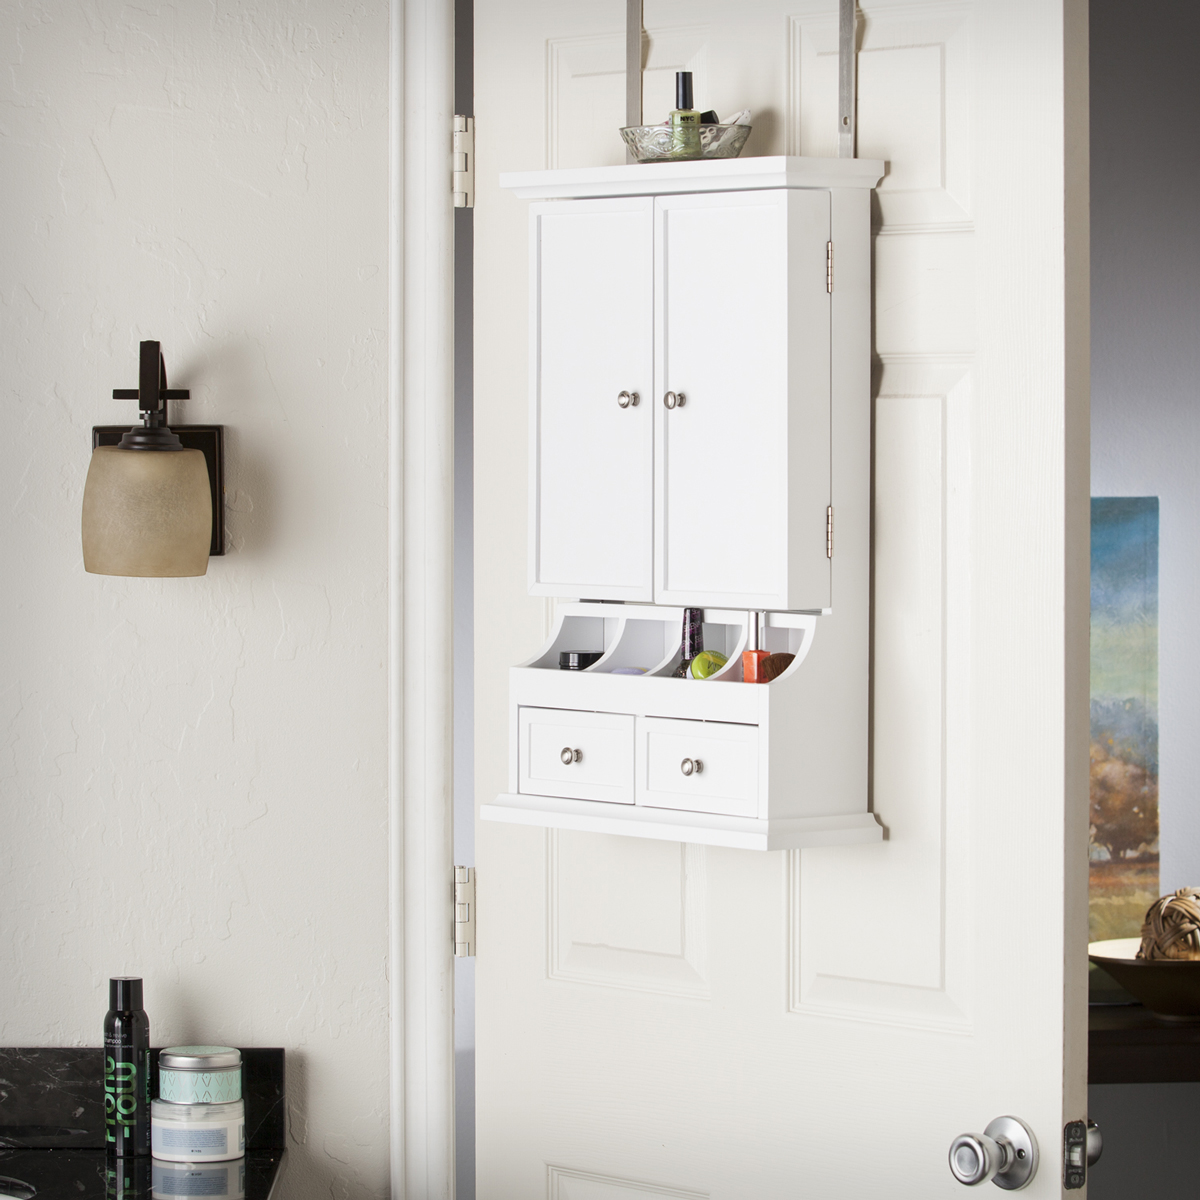 Cute Minimalist White Cabinet Style Over The Door Jewelry Armoire